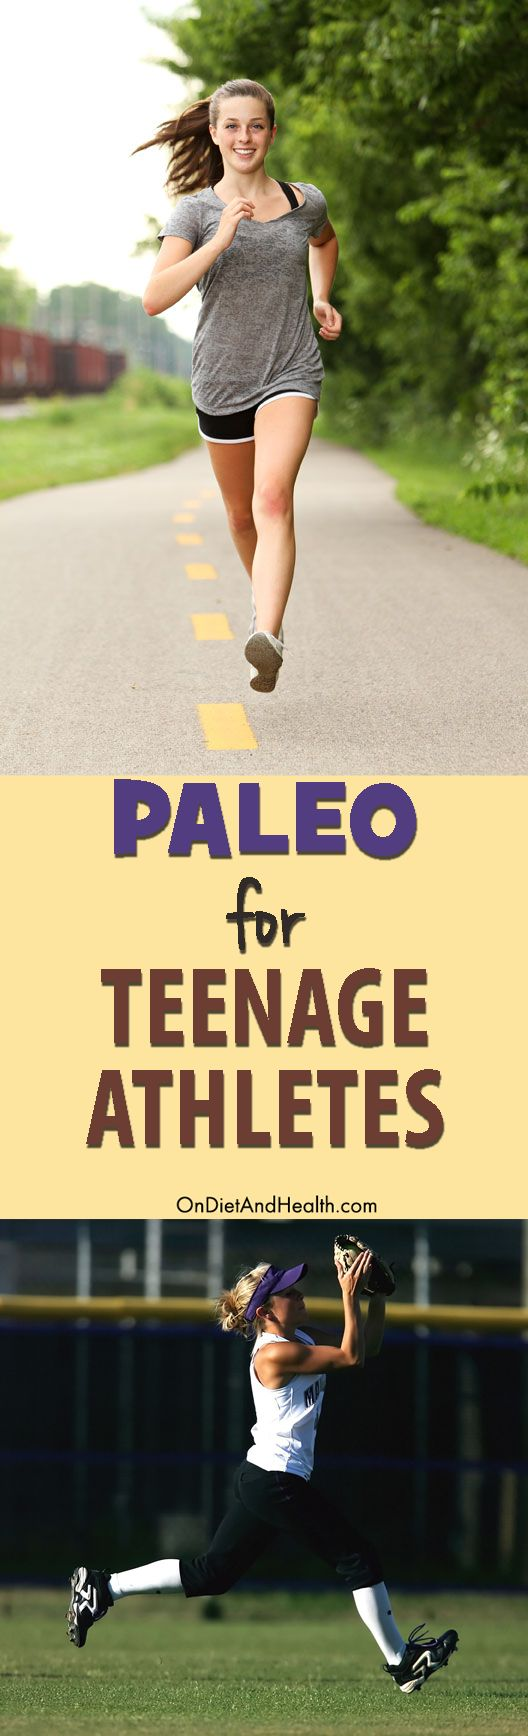 Find out what a Paleo Diet means for teens and teen athletes and what foods would be included // OnDietAndHealth.com